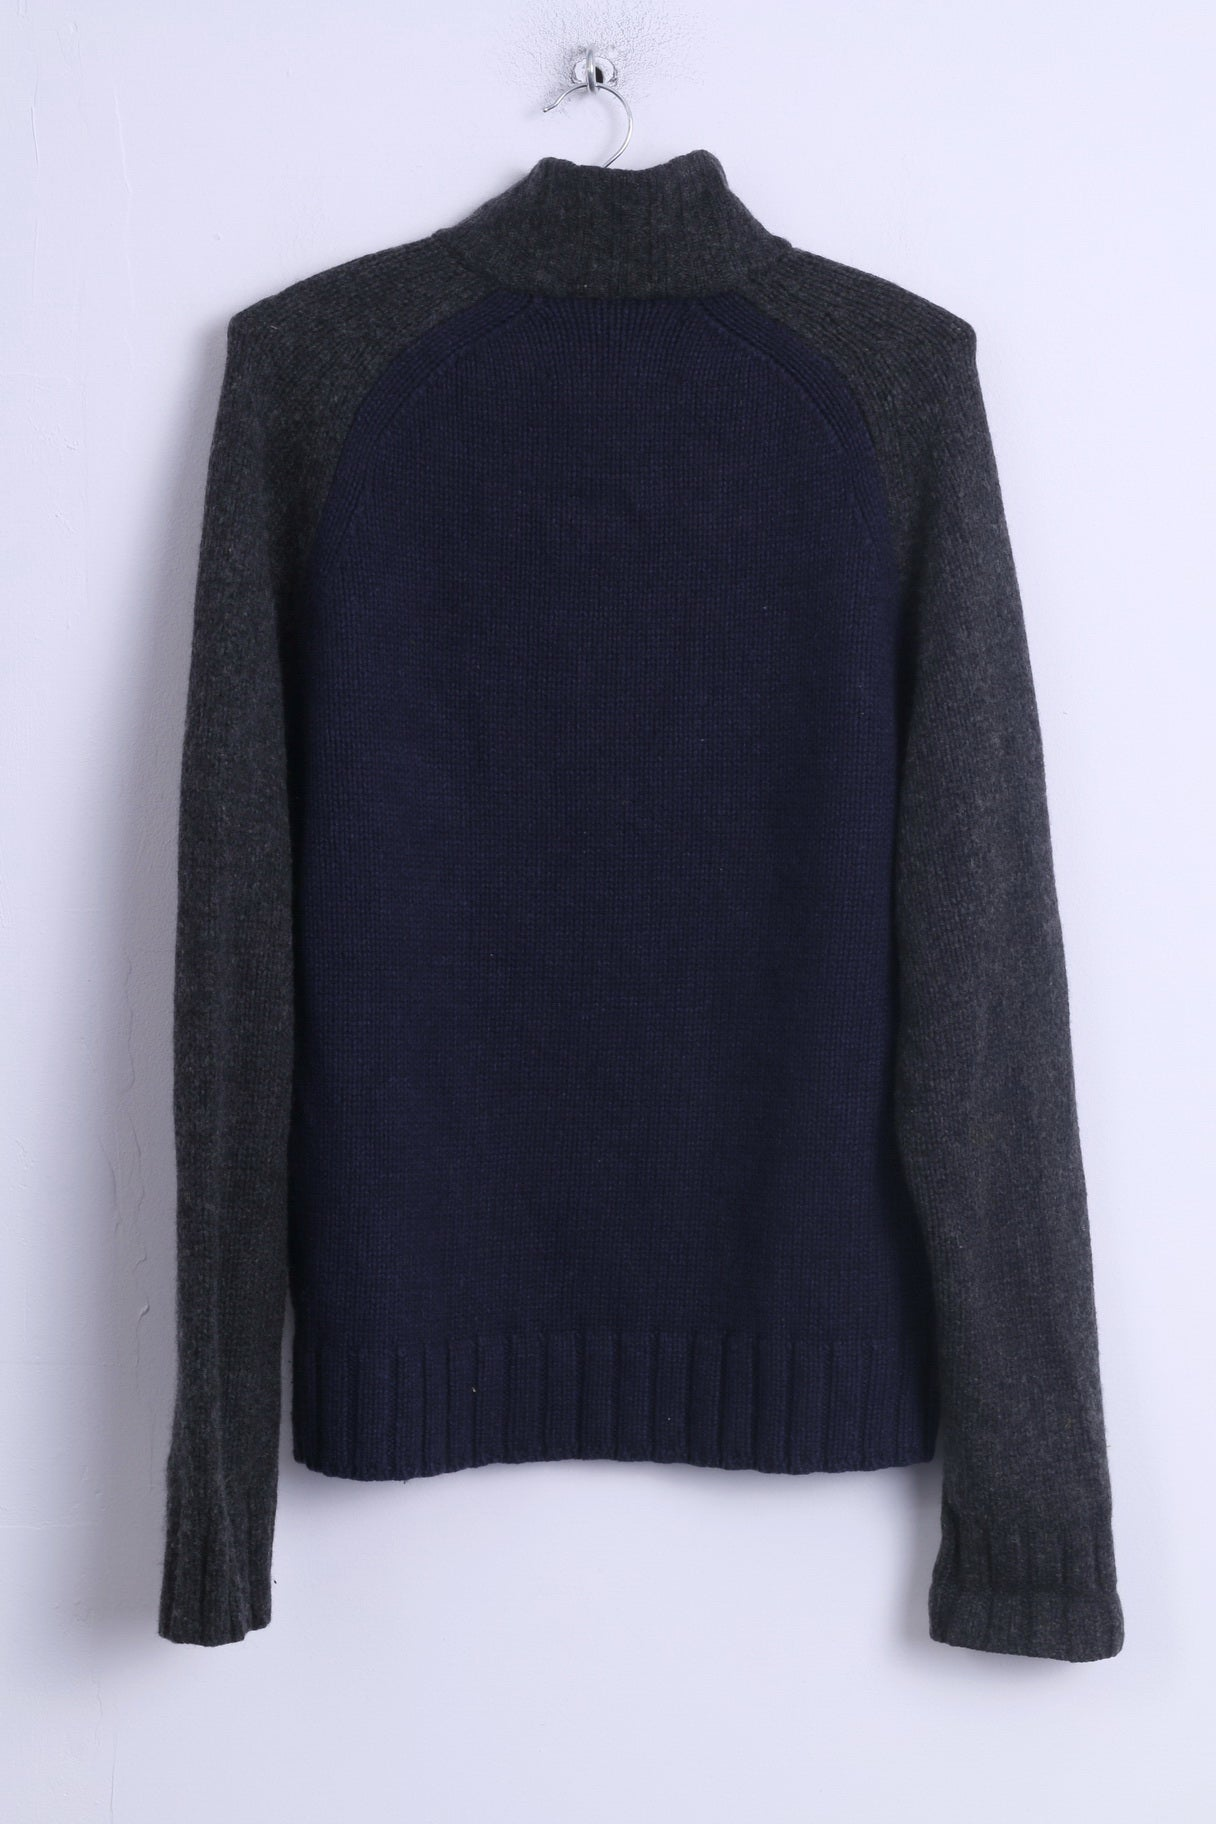 ebe278f7 ... Abercrombie & Fitch Mens XL Sweater Navy Zip Up Muscle Lambswool AF 92